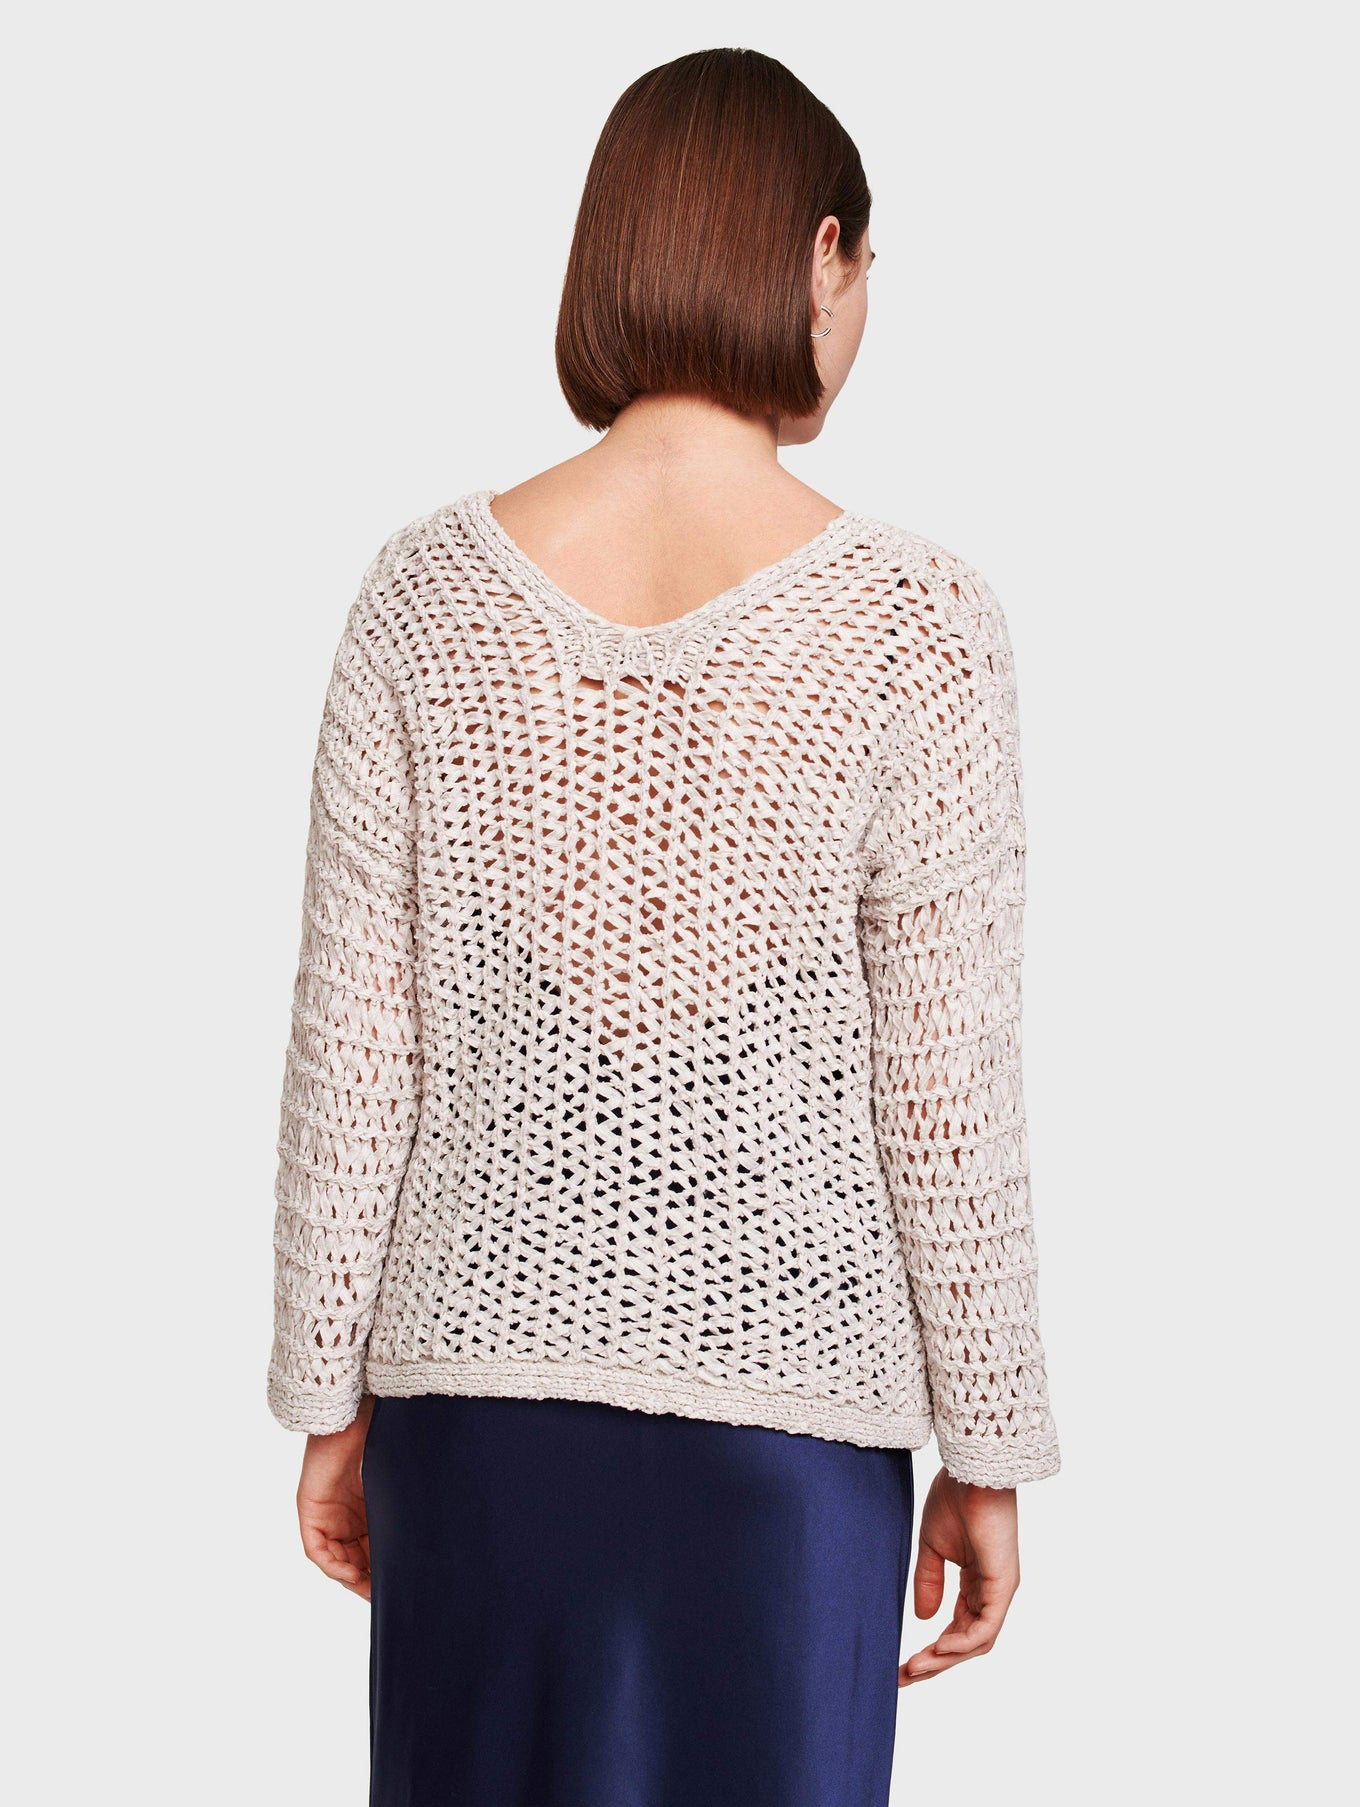 Cotton Open Knit V Neck